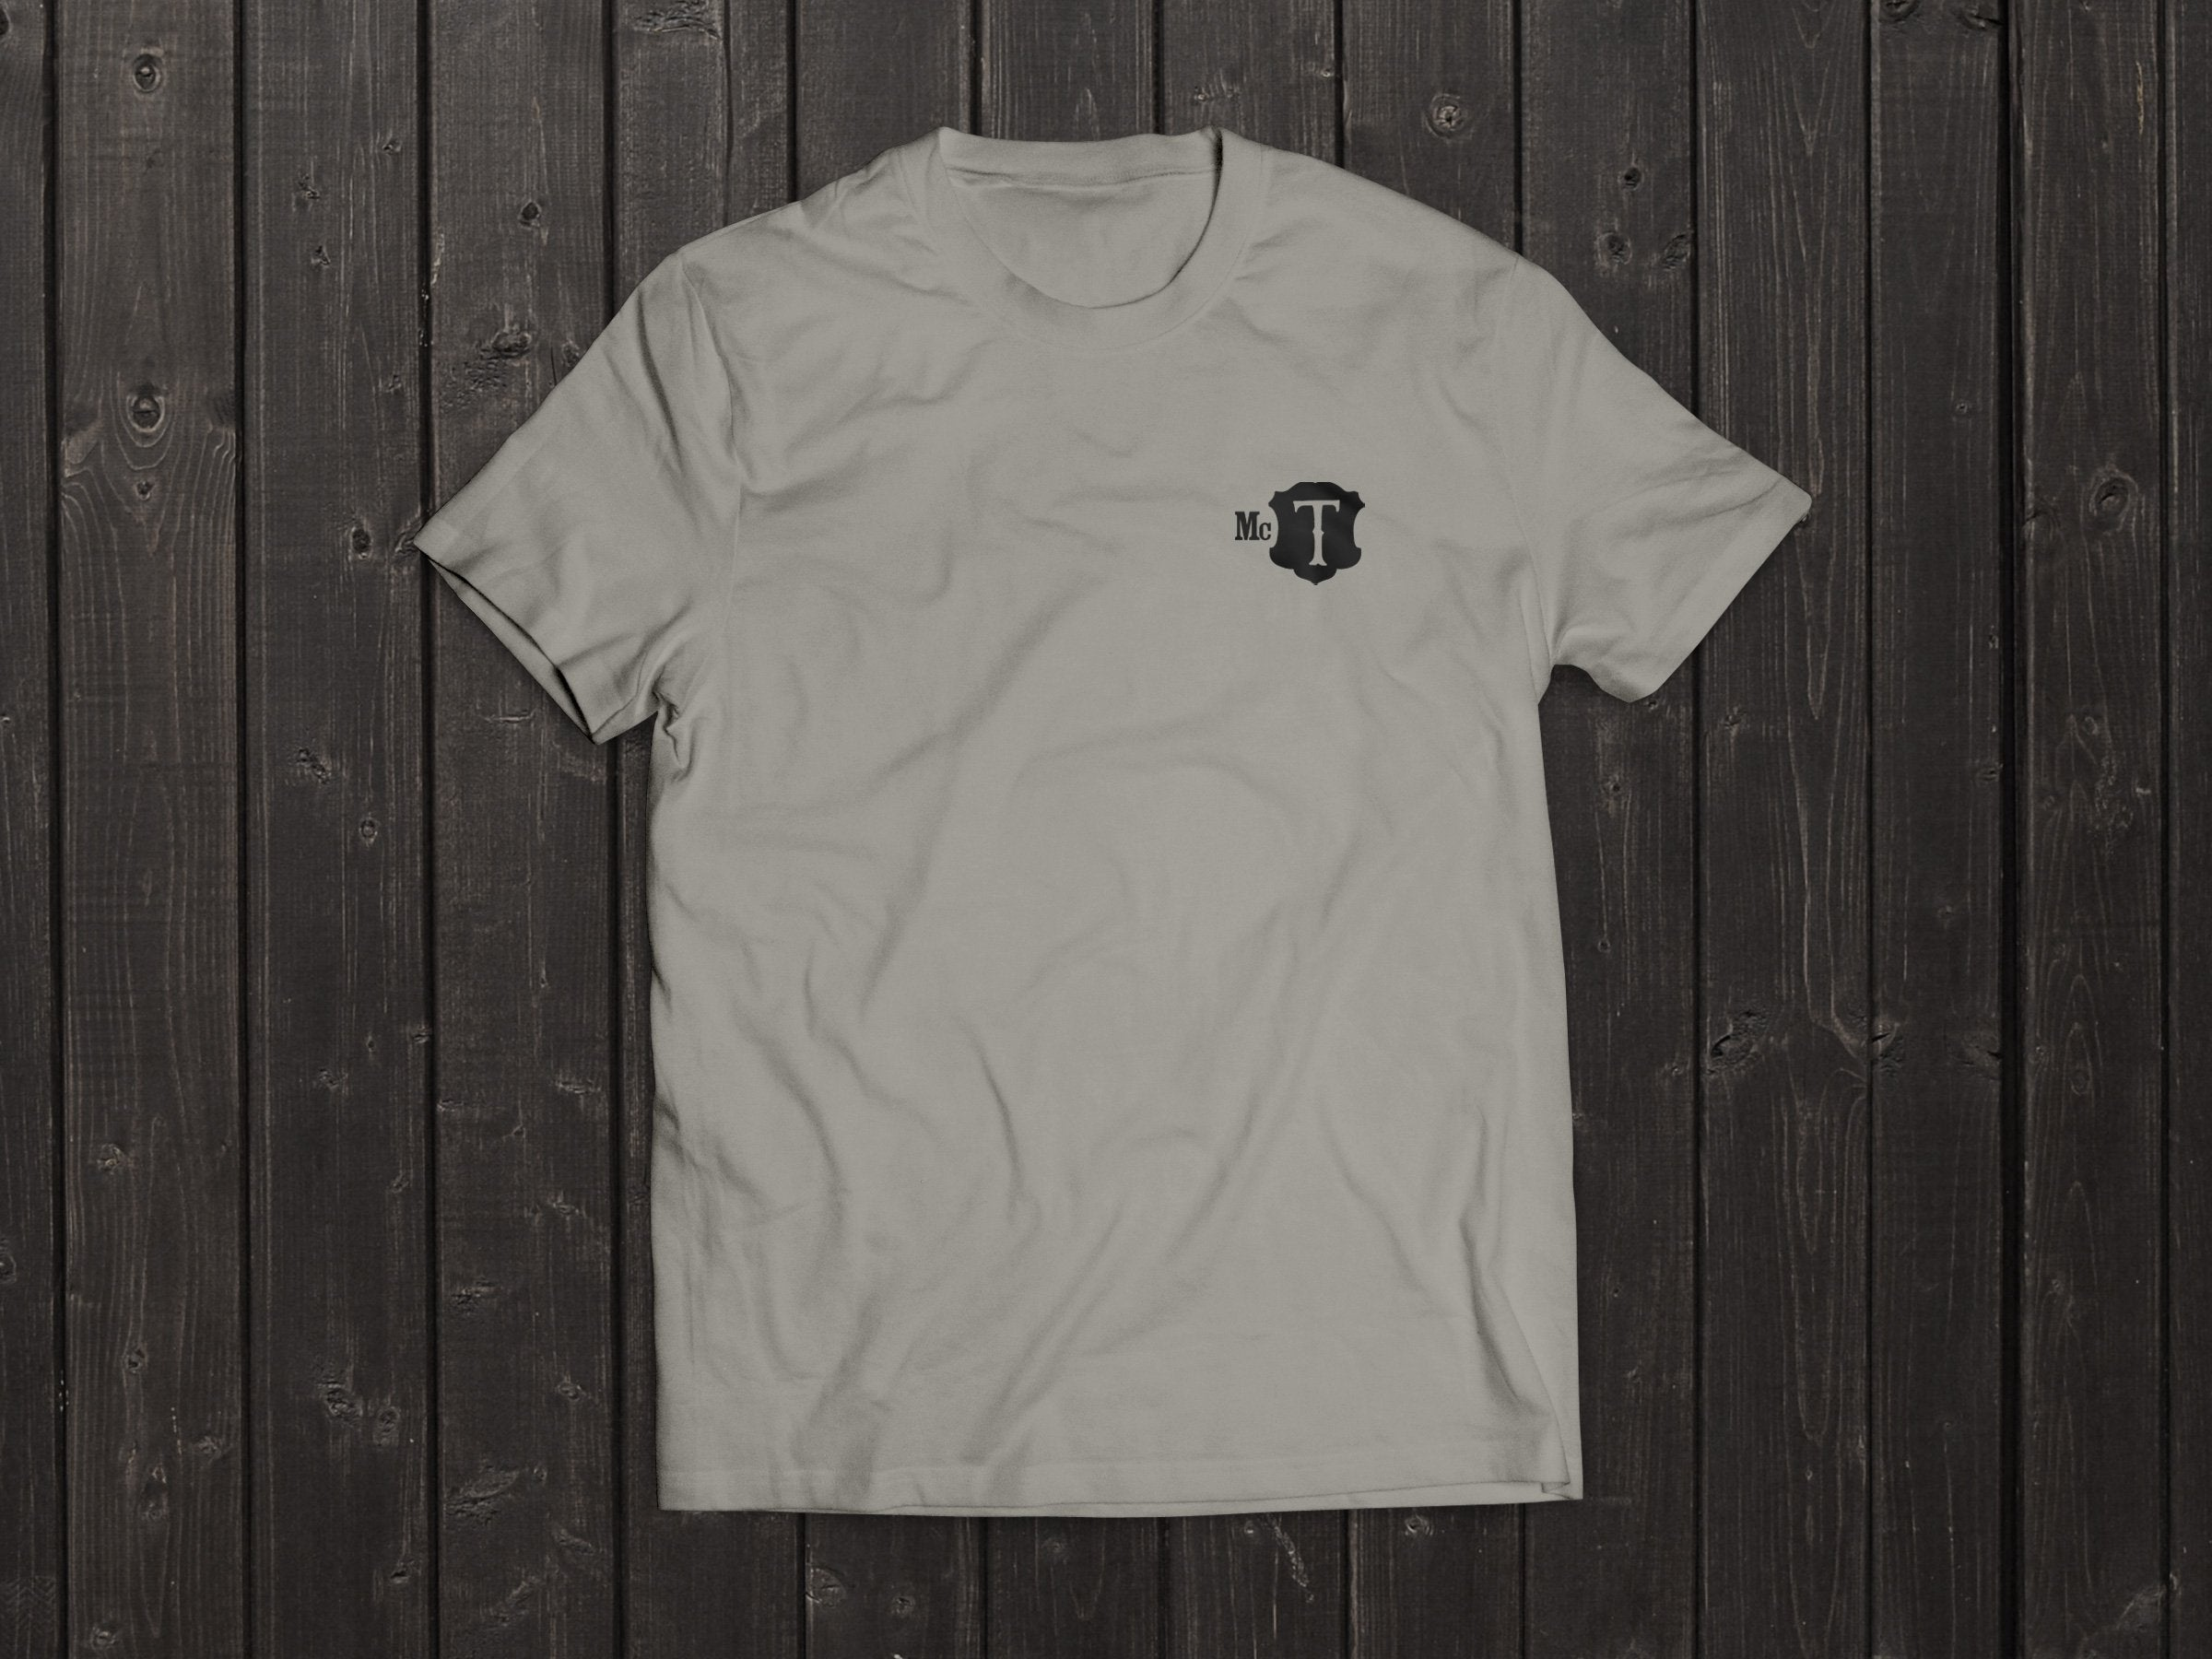 The McT Tony Singh T Shirt in Light Grey